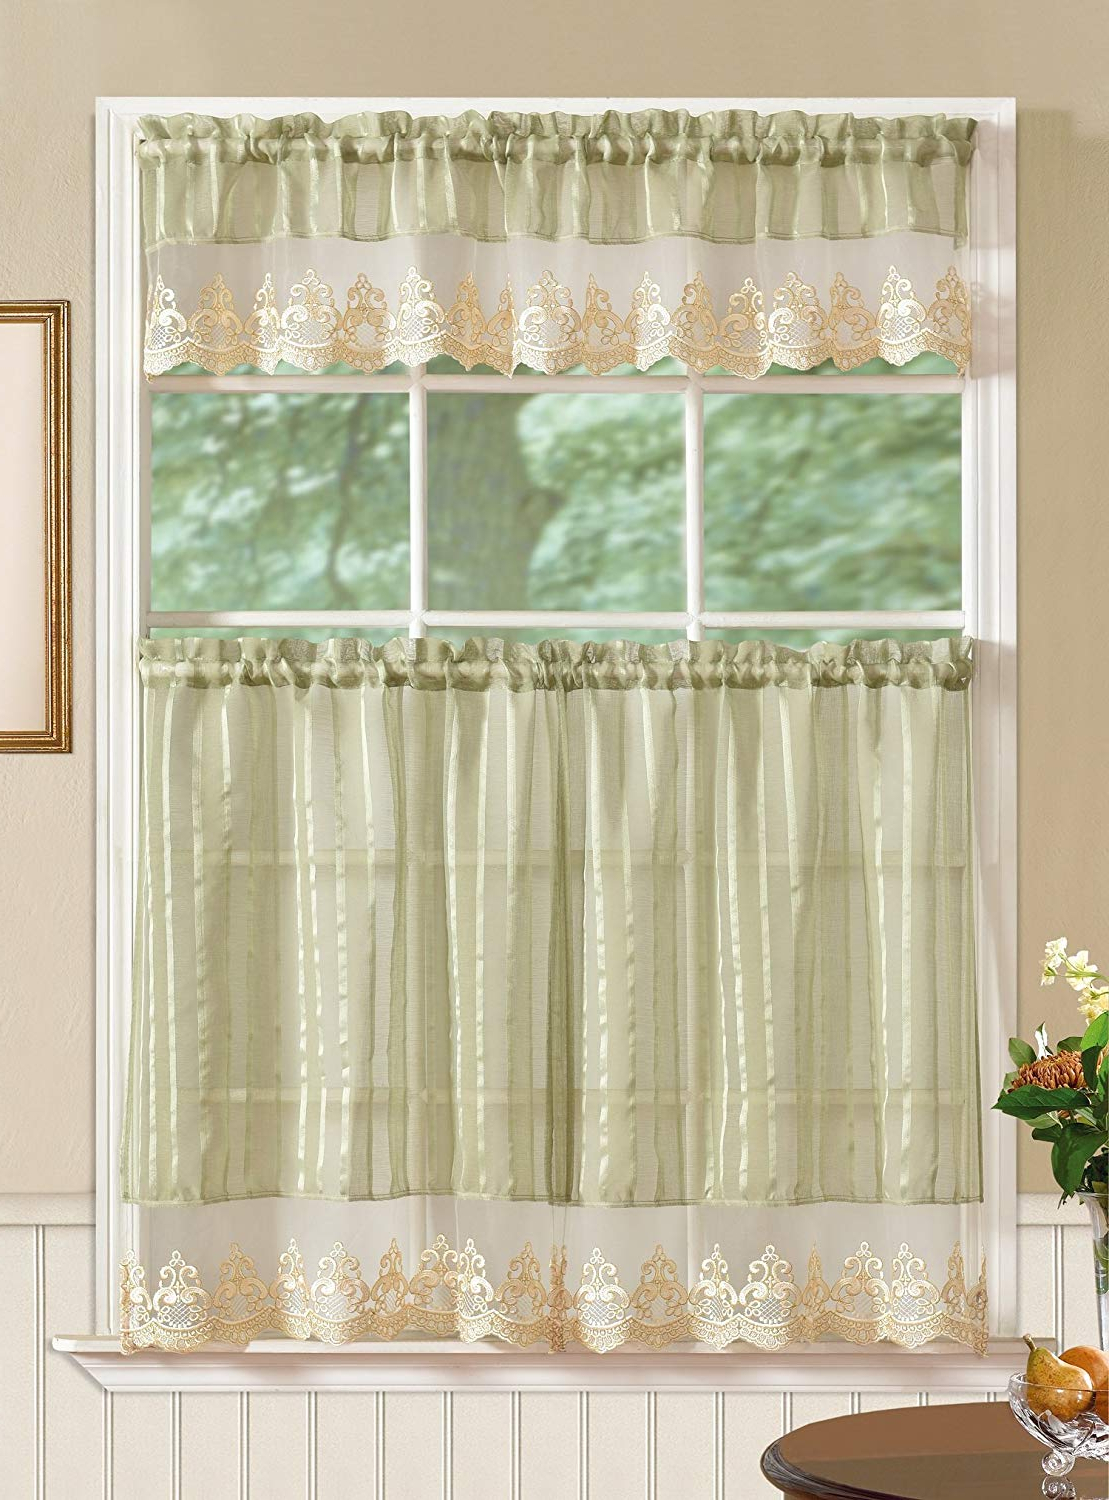 Famous Rt Designers Collection Bella Tier And Valance Kitchen Curtain Set, Grey In Cottage Ivy Curtain Tiers (View 4 of 20)